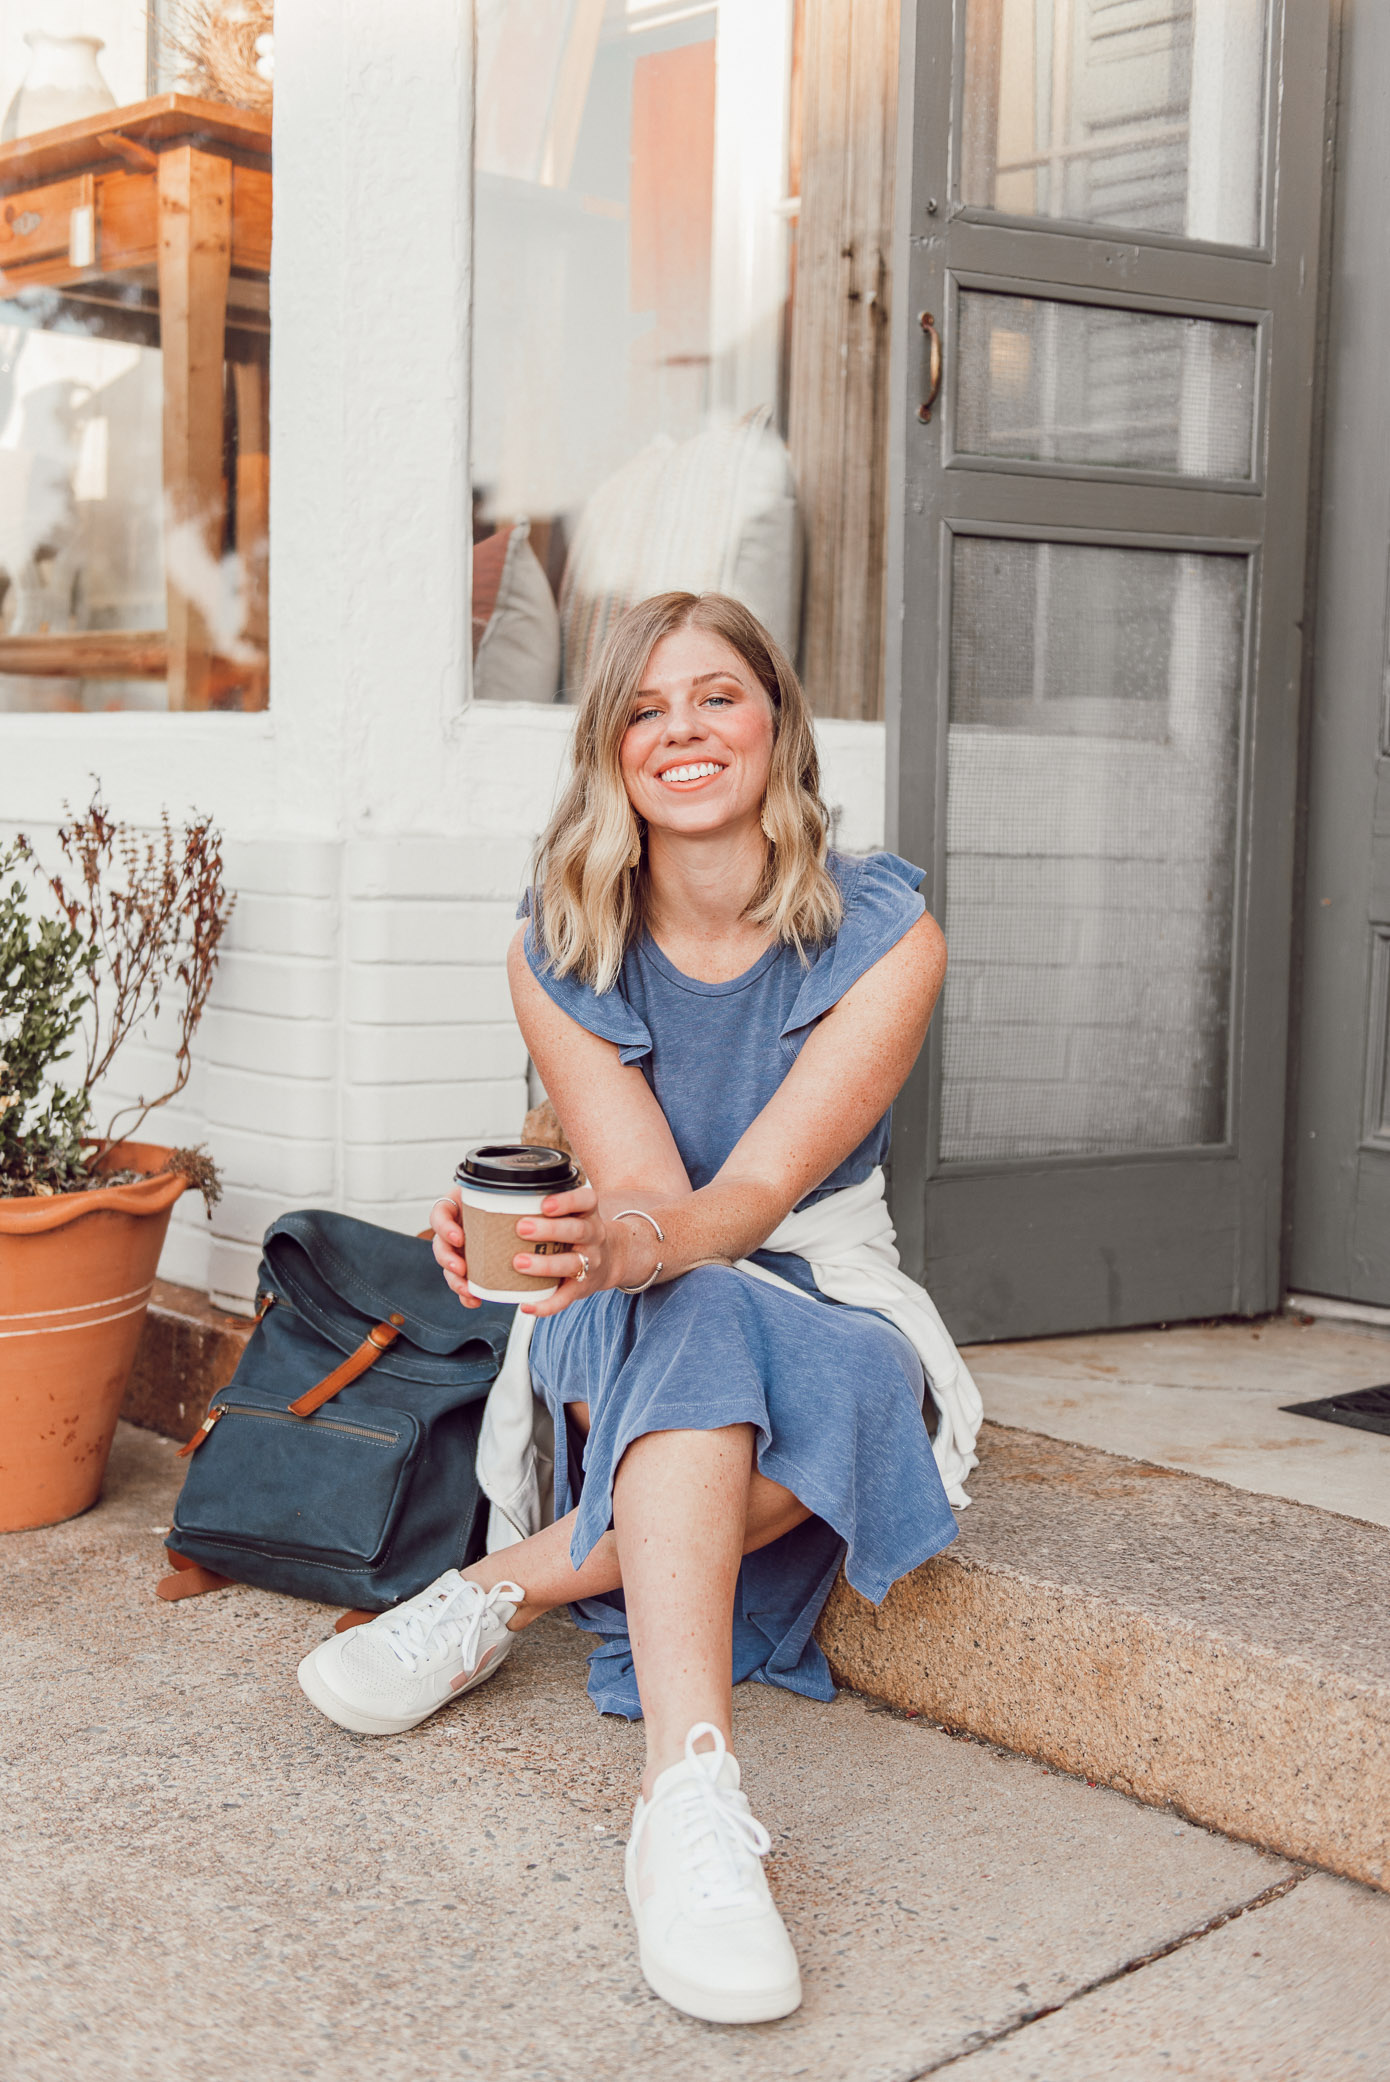 T-Shirt Midi Dress Styled Two Ways | One Dress Two Seasons - How to Style for Summer and then into the Fall Season | Louella Reese